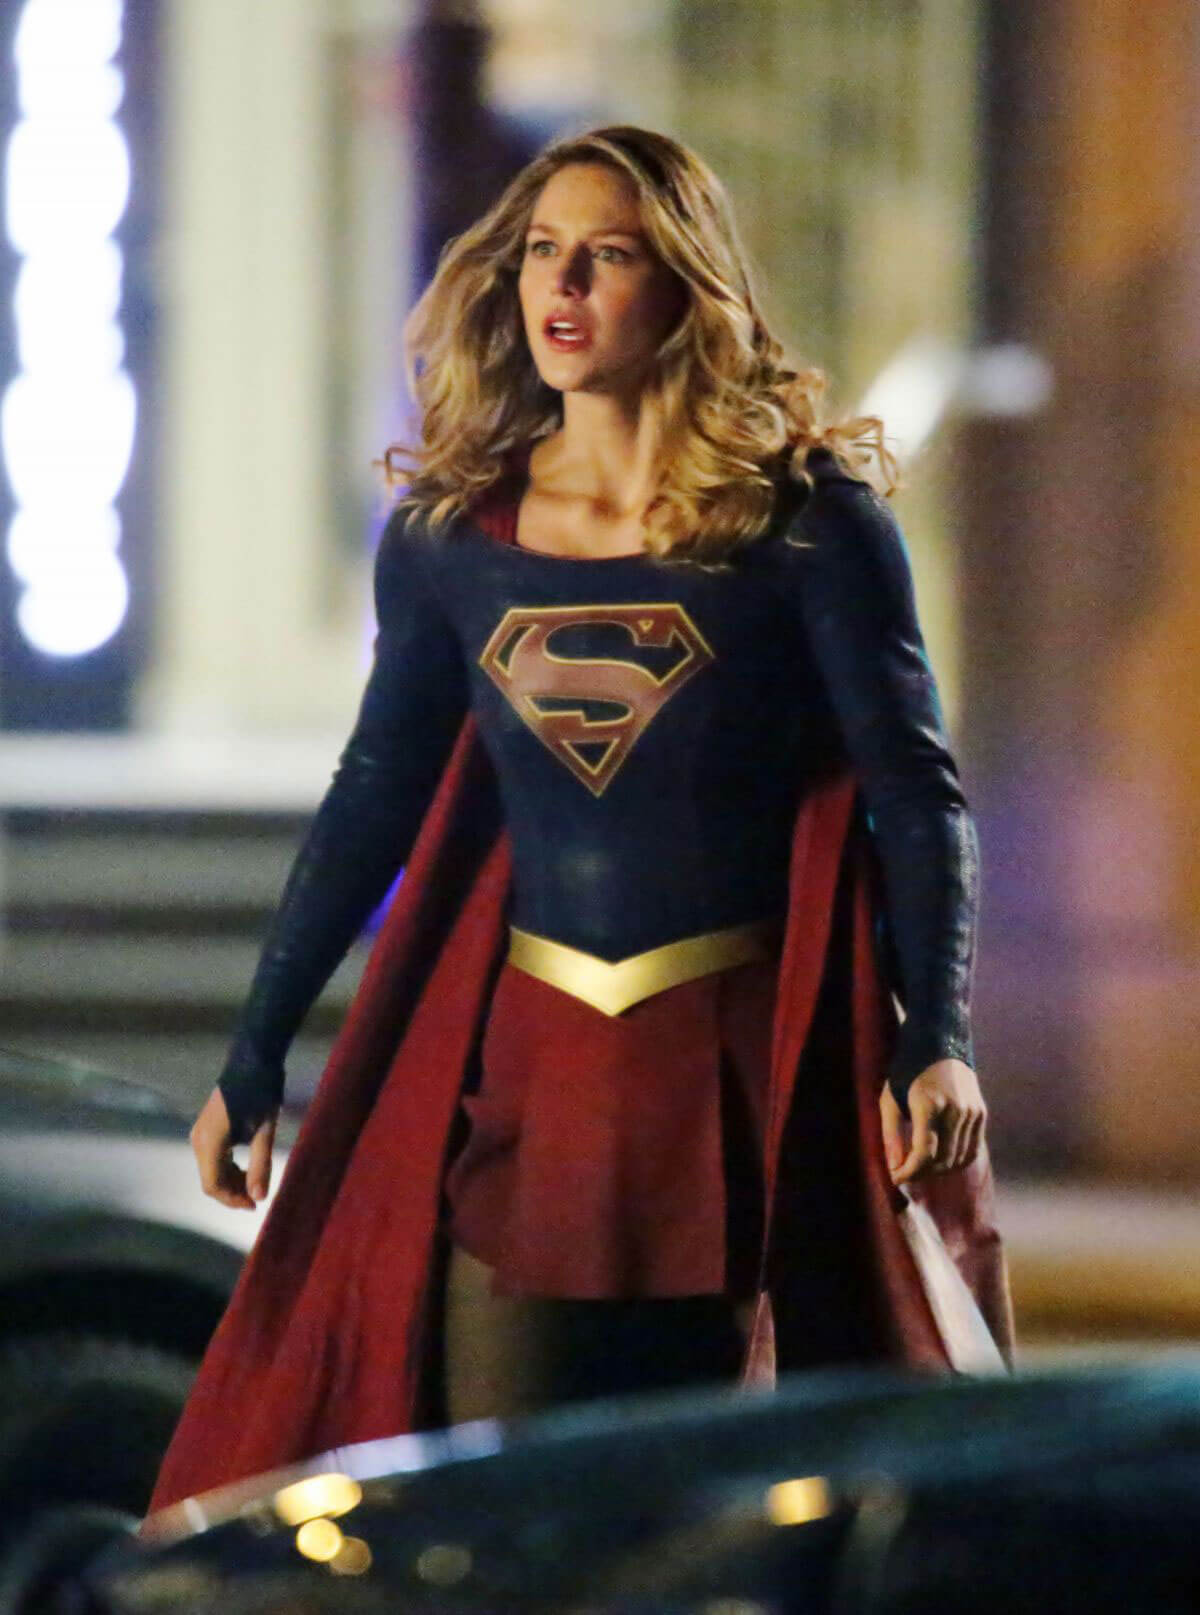 Melissa Benoist on the Evening Set of 'Supergirl' in Vancouver